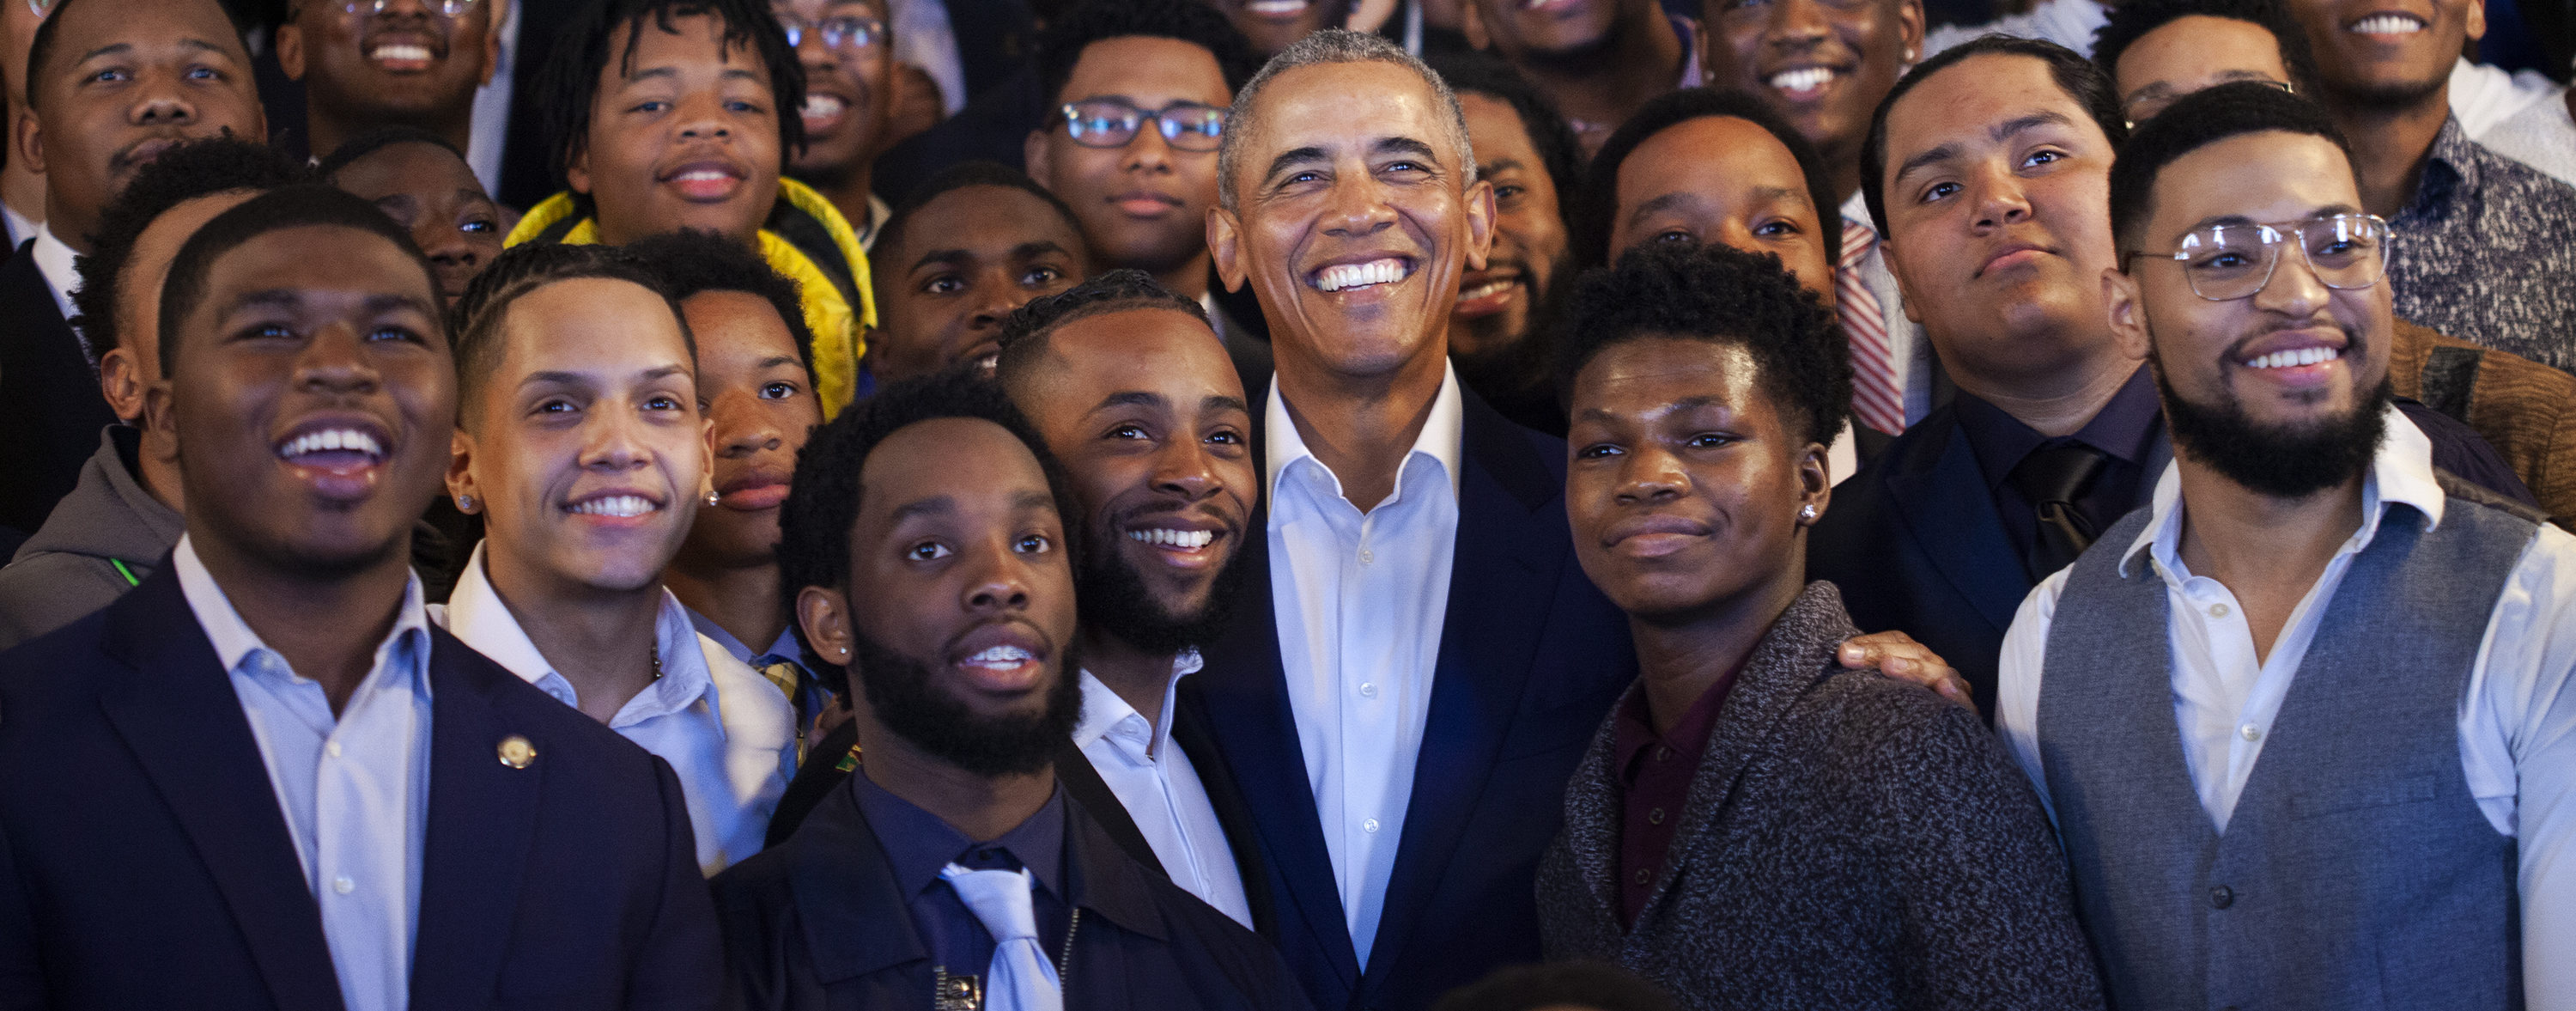 The Obama Foundation's My Brother's Keeper Alliance